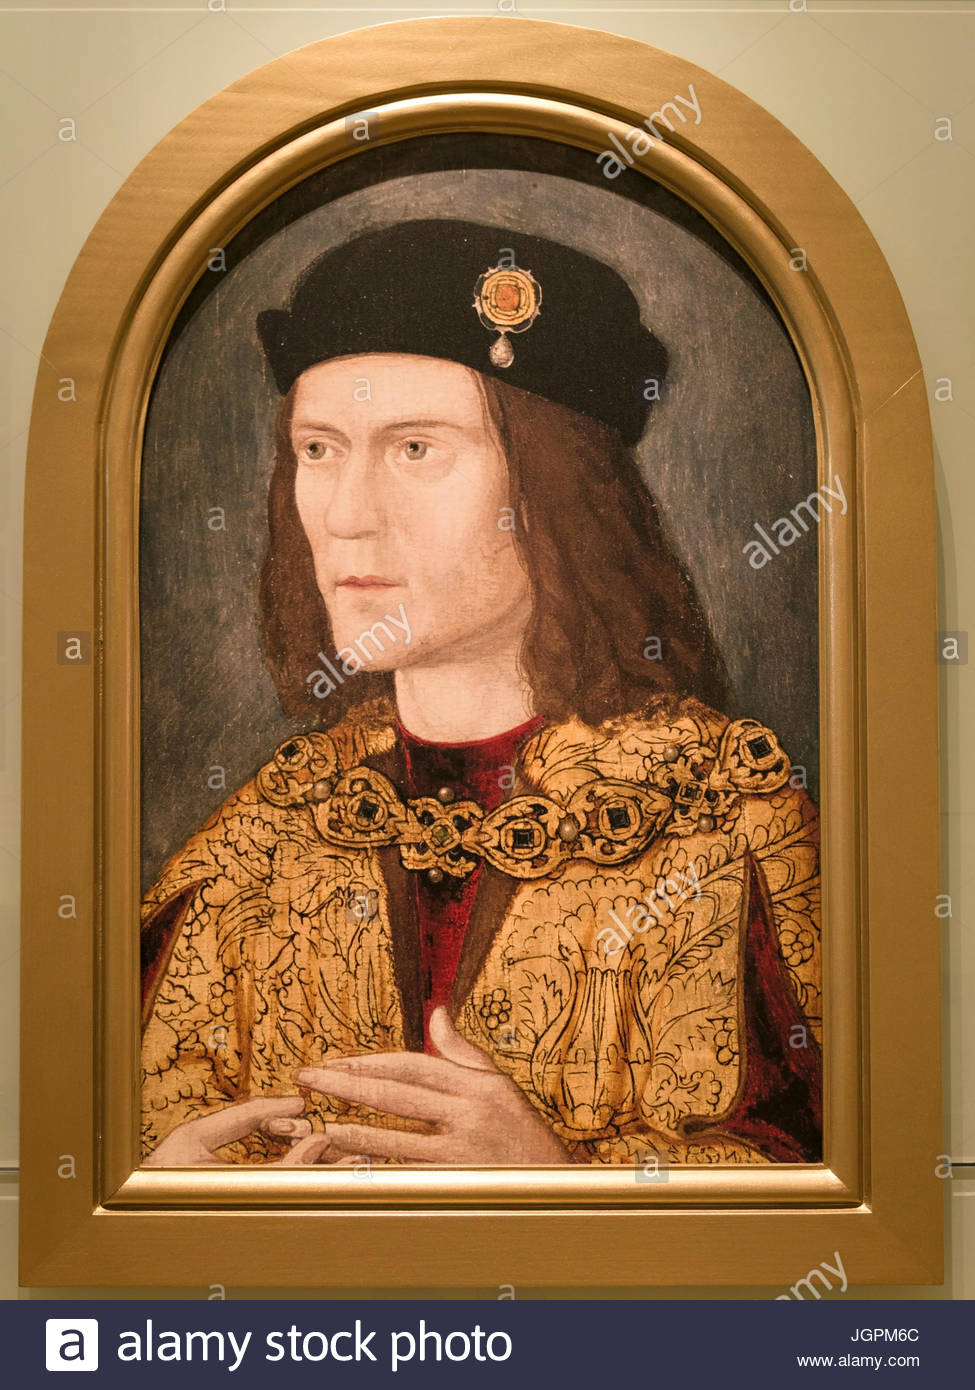 Copy of medieval portrait of King Richard on display in King Richard III Visitor Centre Exhibition, Leicester, England, - Stock Image